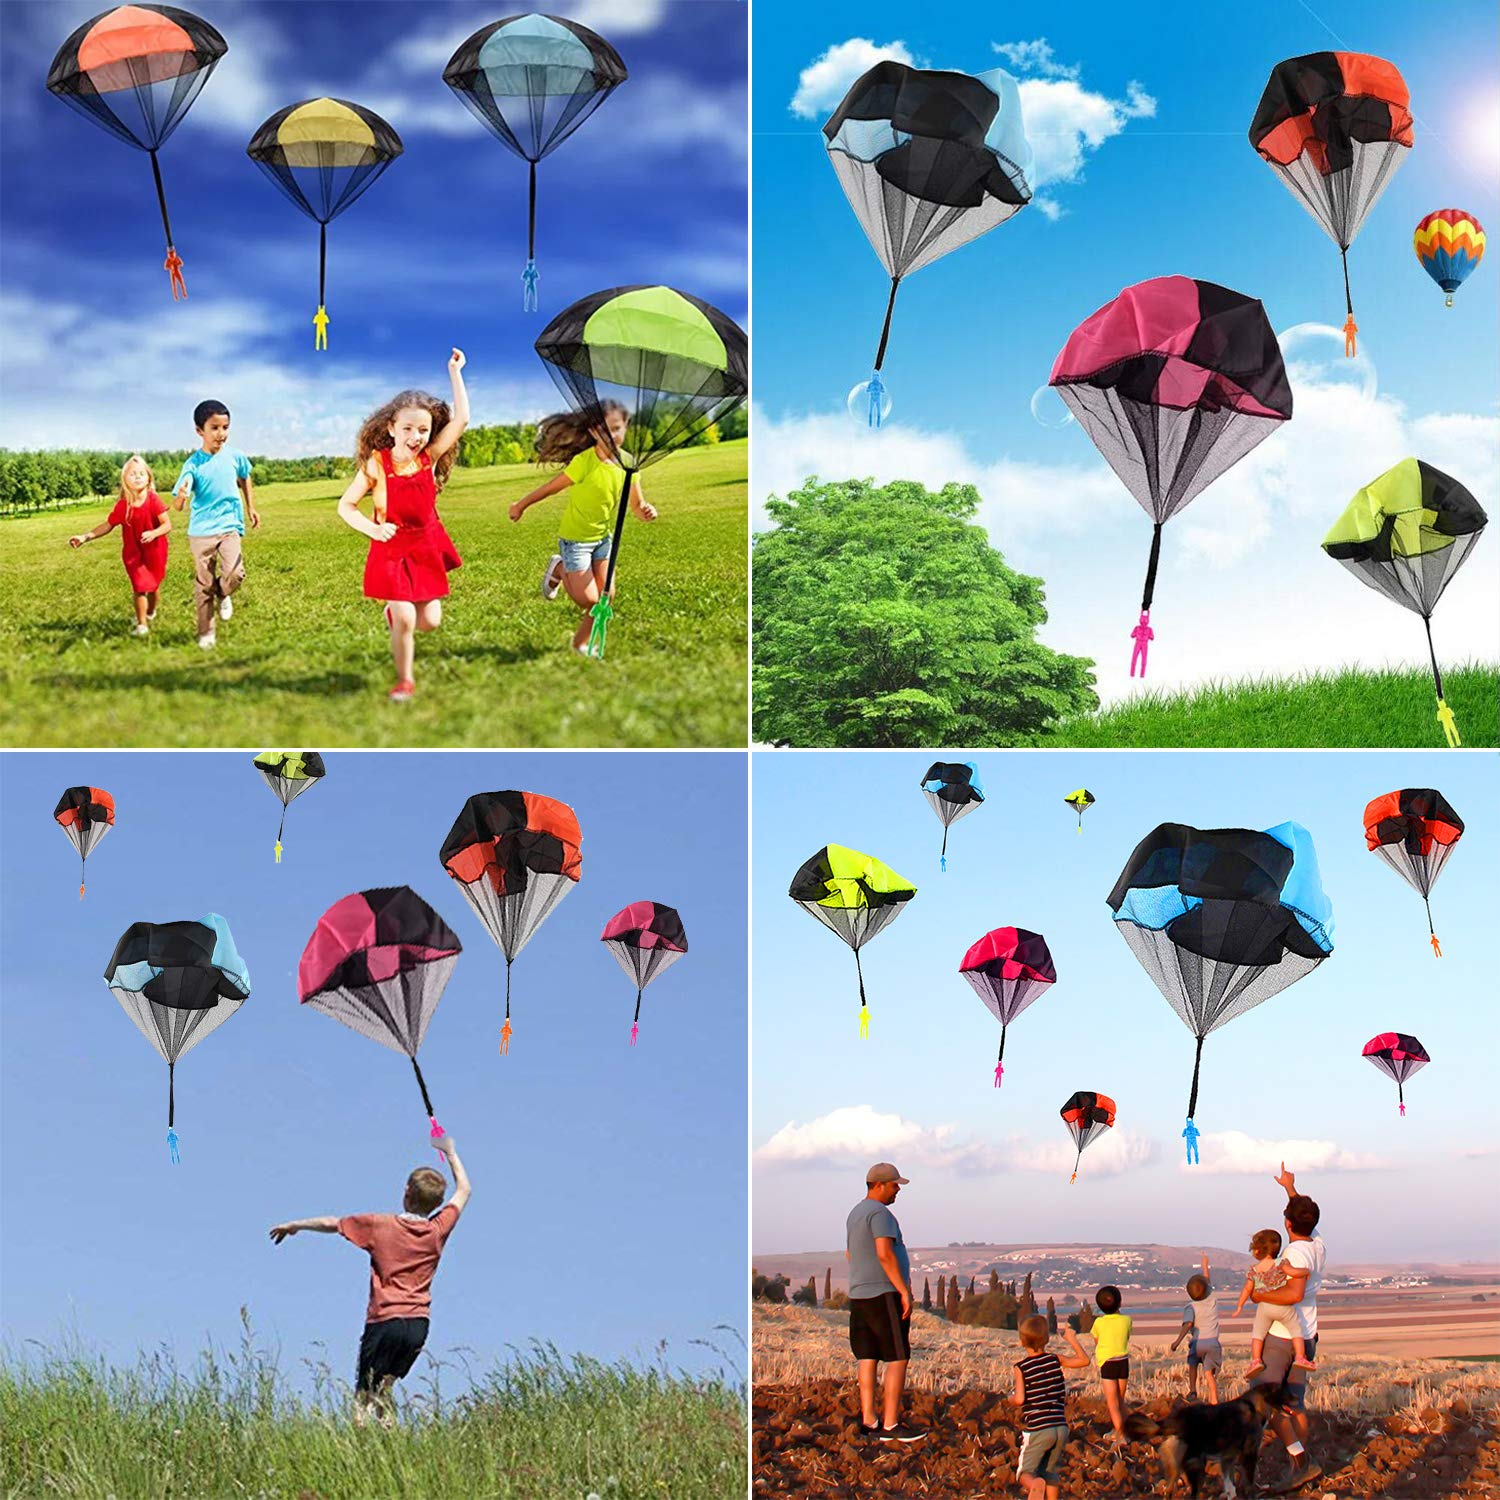 Camlinbo Parachute Toy-8 Pack Tangle Free Throwing Hand Throw Soldiers Parachute Man, Outdoor Children's Flying Toys for Kids Boys Girls Toddler No Battery nor Assembly Required by Camlinbo (Image #4)